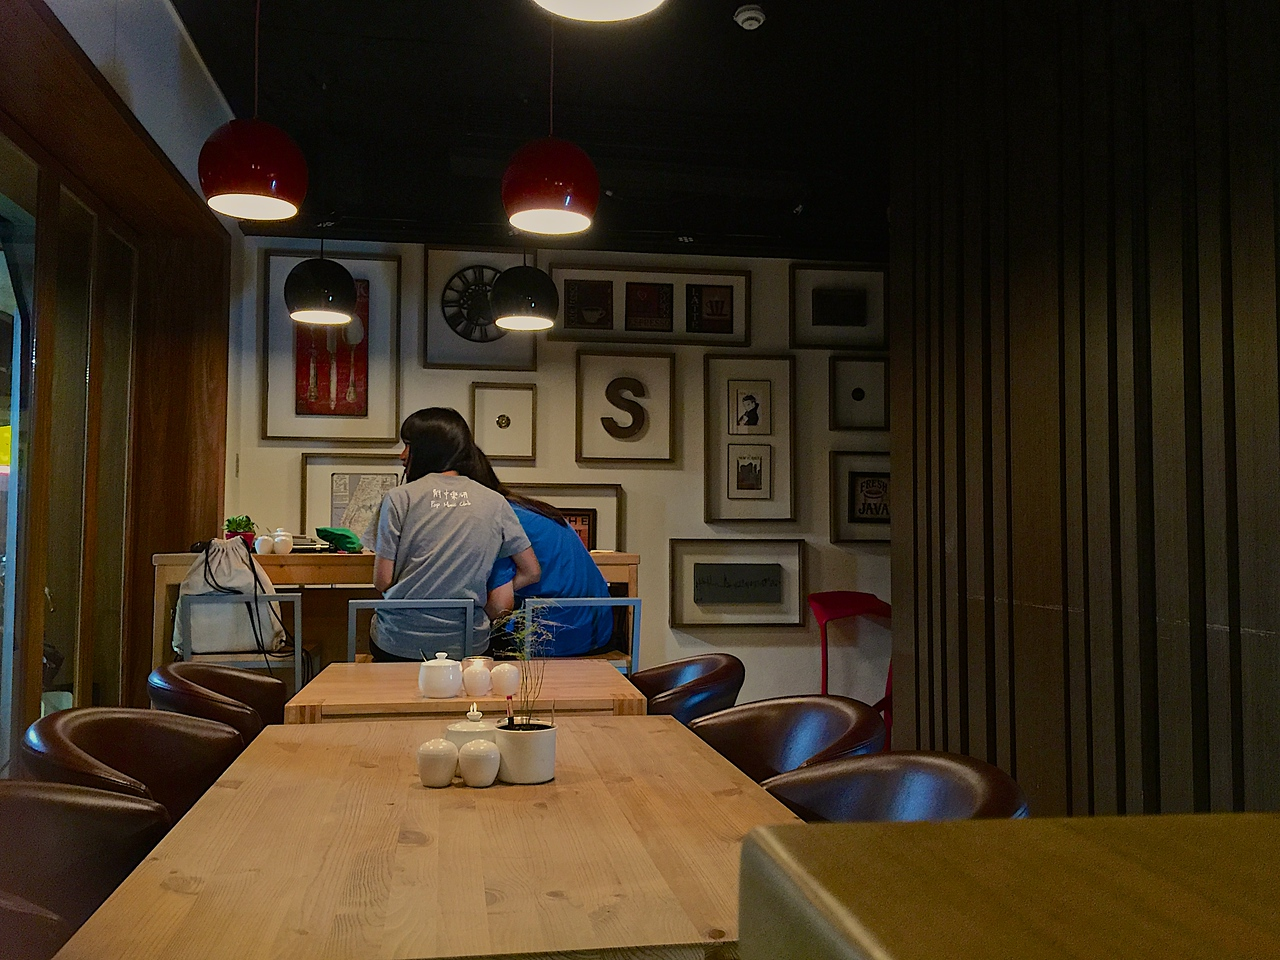 Once inside the small space, you can have an espresso, that's really great or walk behind the wood panel on the right, where you think the building stops.  Look high on the wall for a very small button, push and wait....